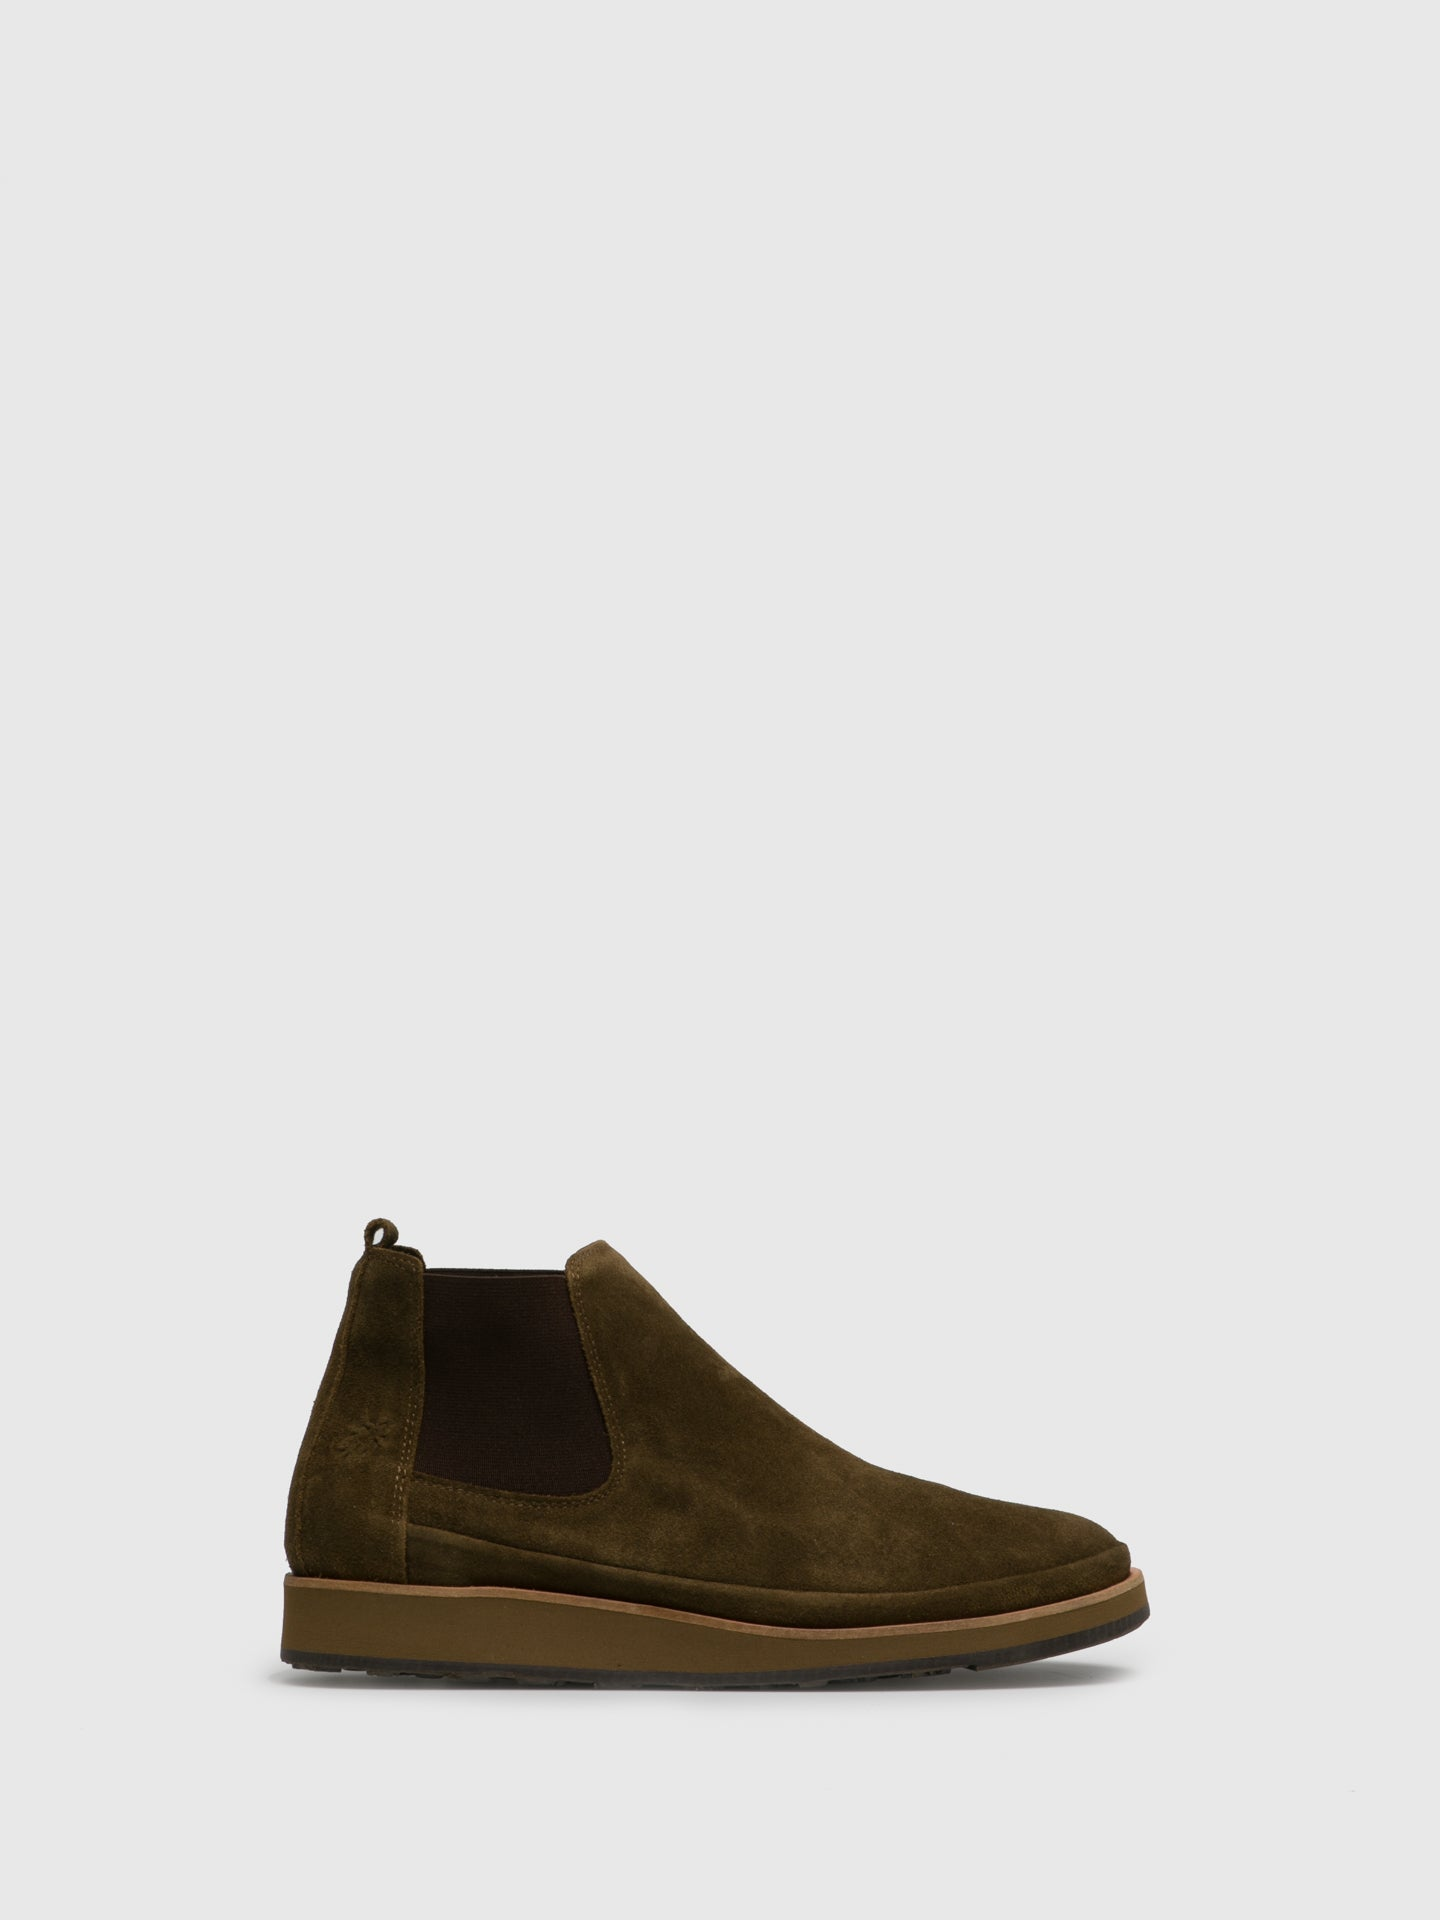 Fly London Botins Chelsea em Verde Oliva